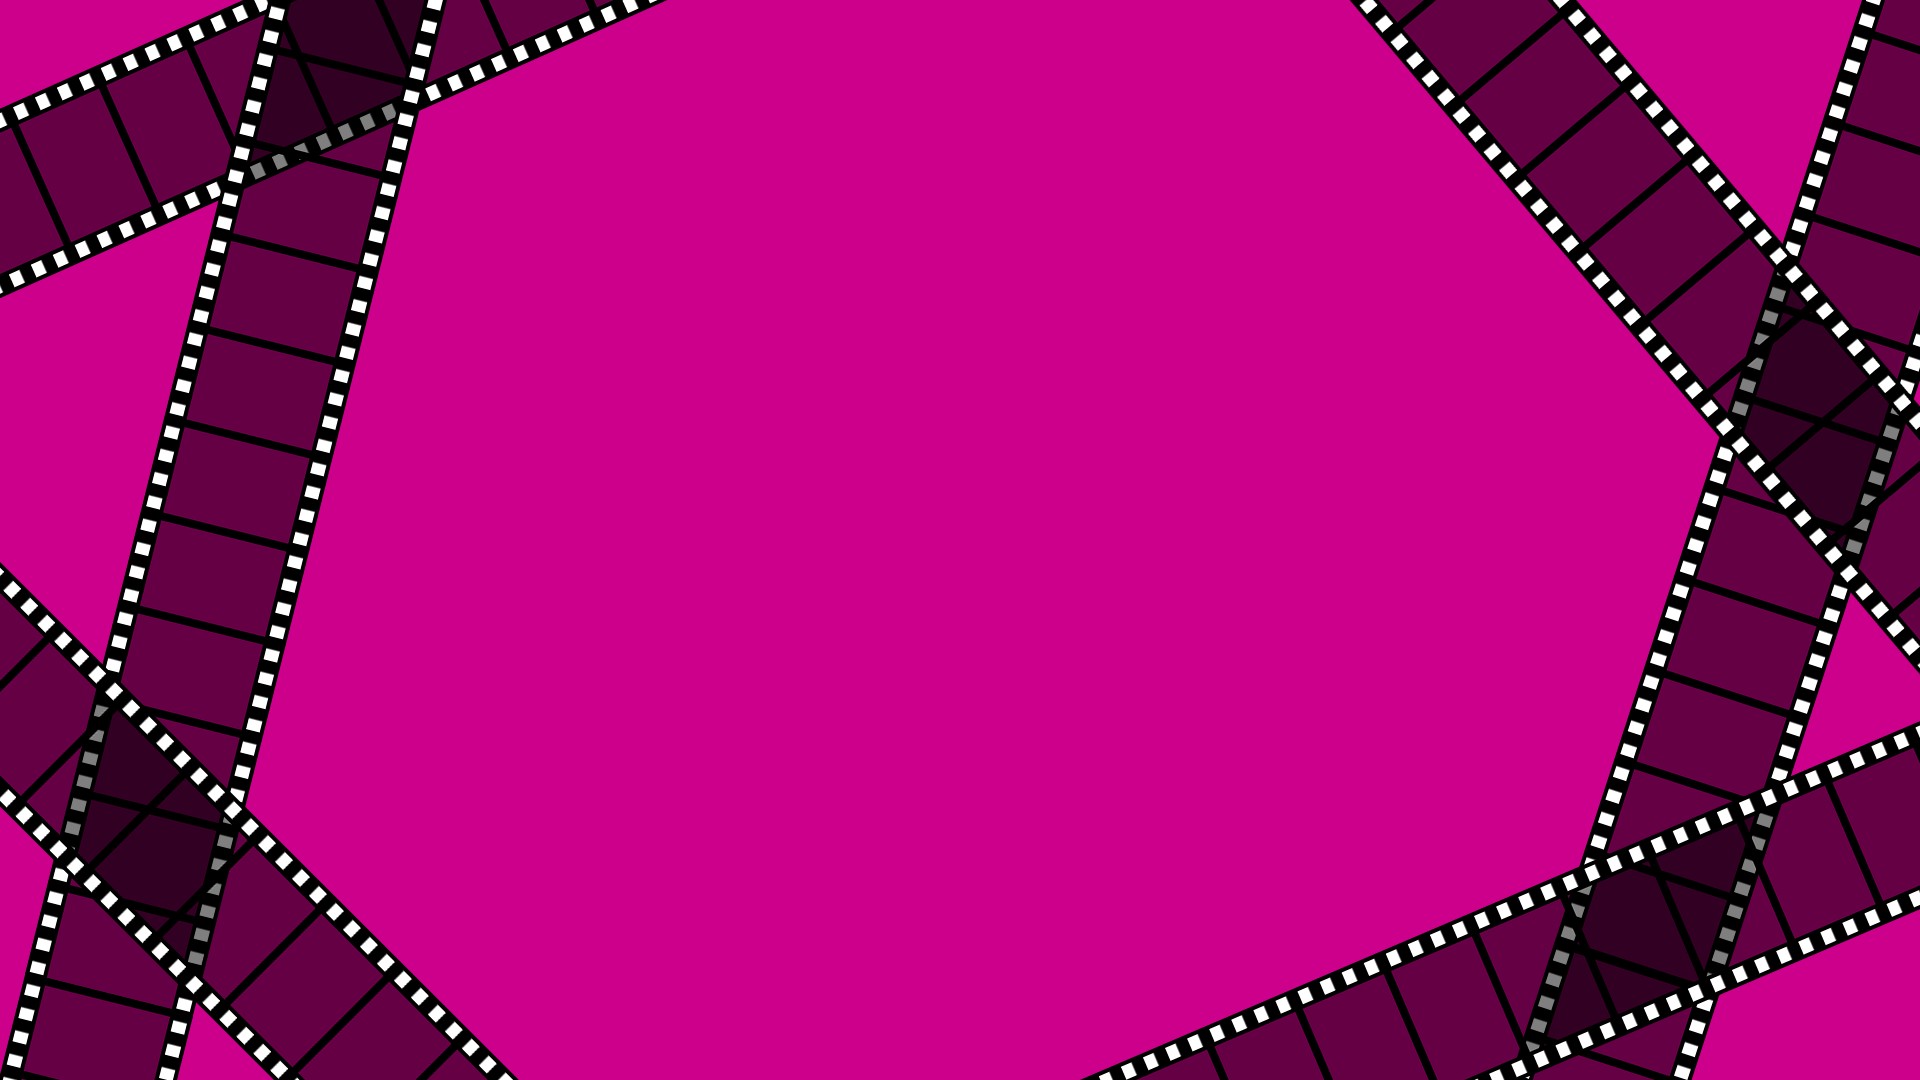 Pink Background Desktop Windows